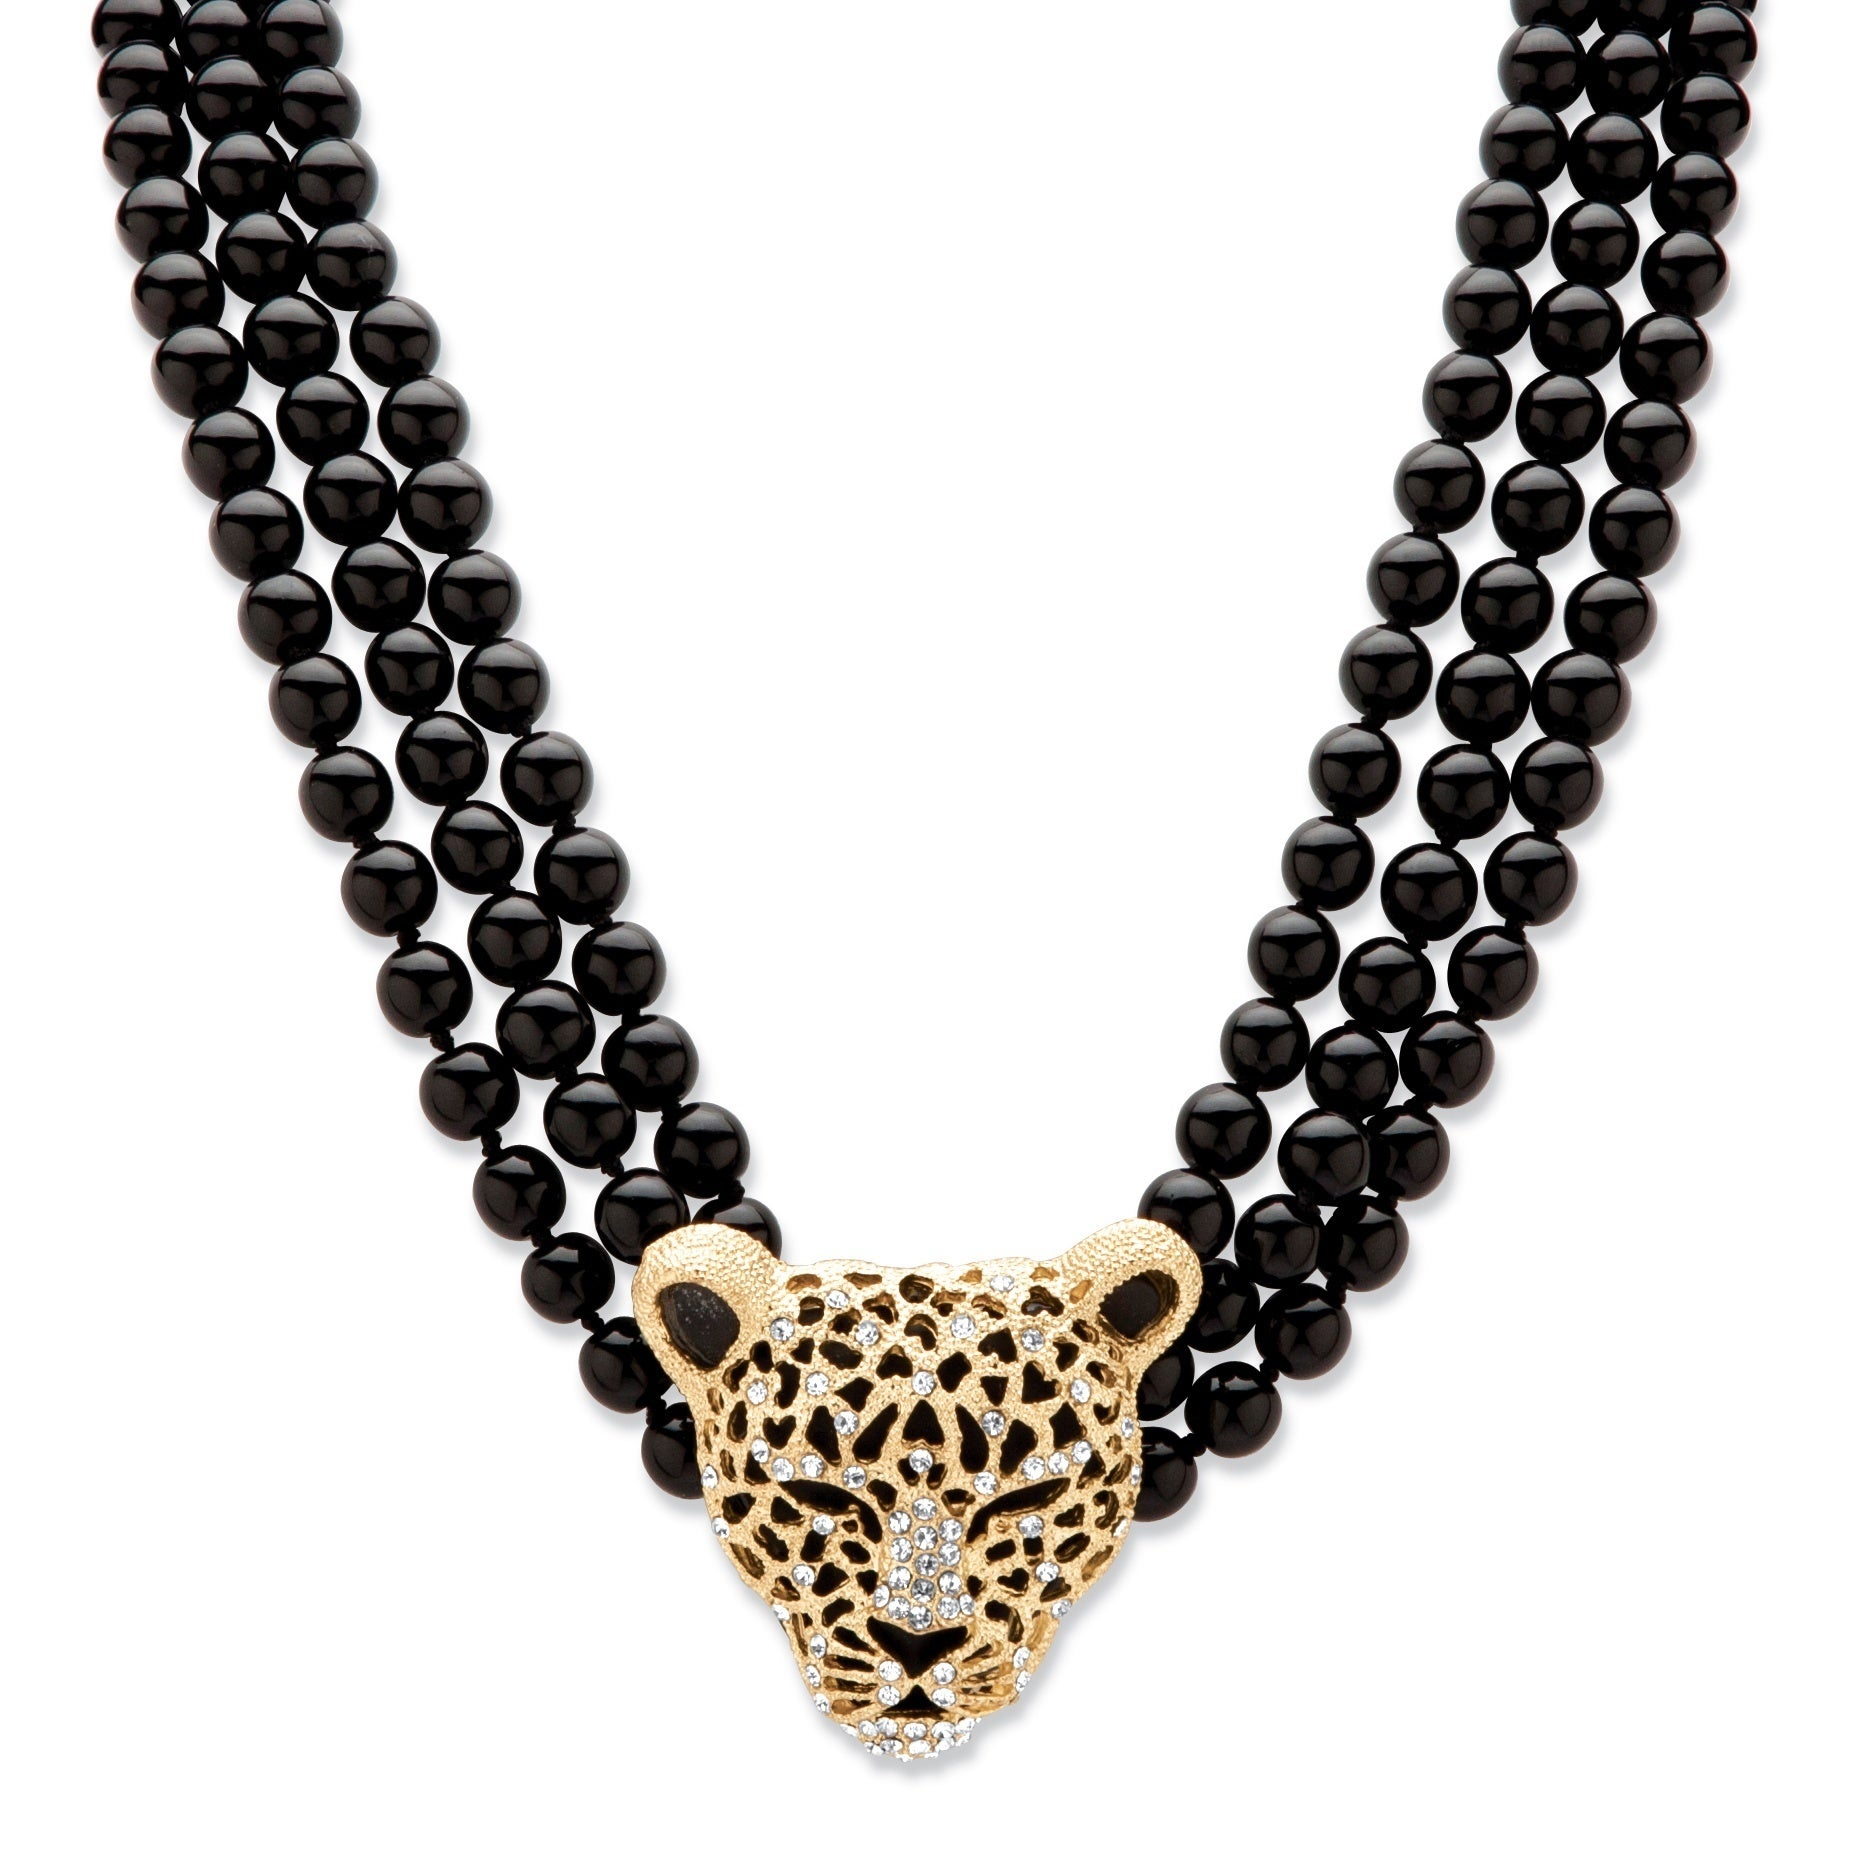 Palm Beach Genuine Onyx and Crystal Leopard Beaded Neckla...